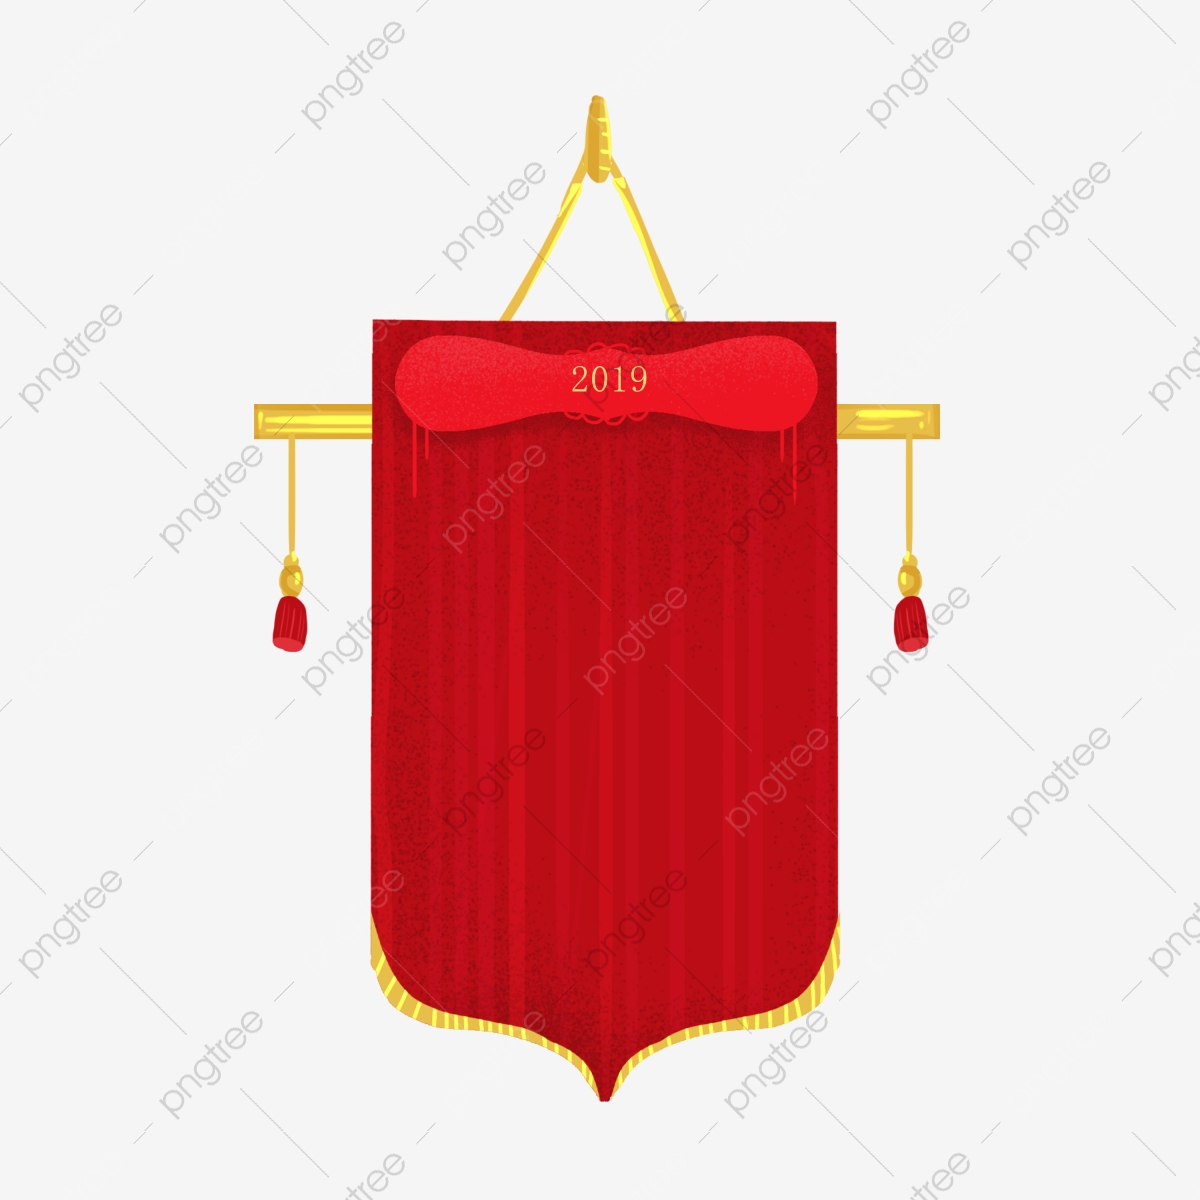 Honor Banner Honor Hanging Flag Red Red Hanging Flag, Victory.